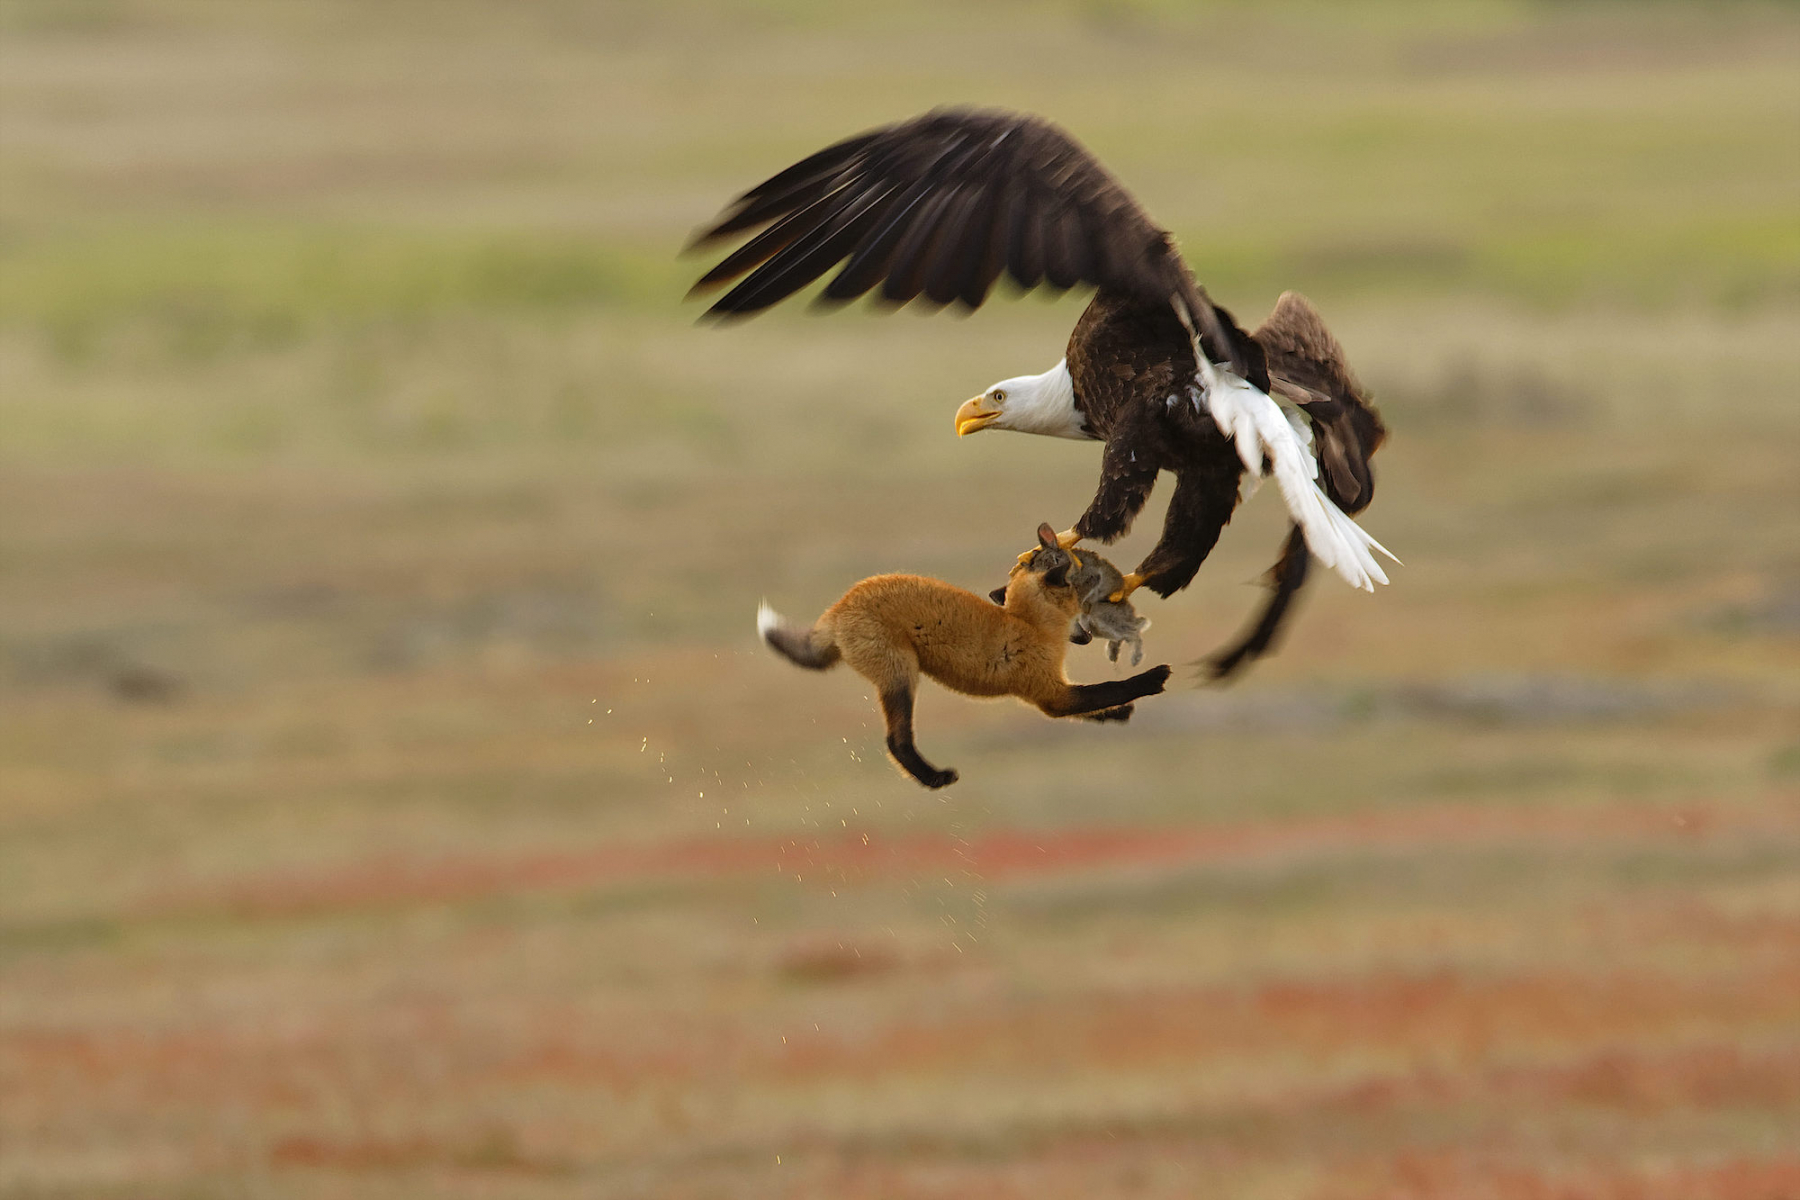 Professional Honorable Mention: Bald Eagle and red fox tussling over rabbit